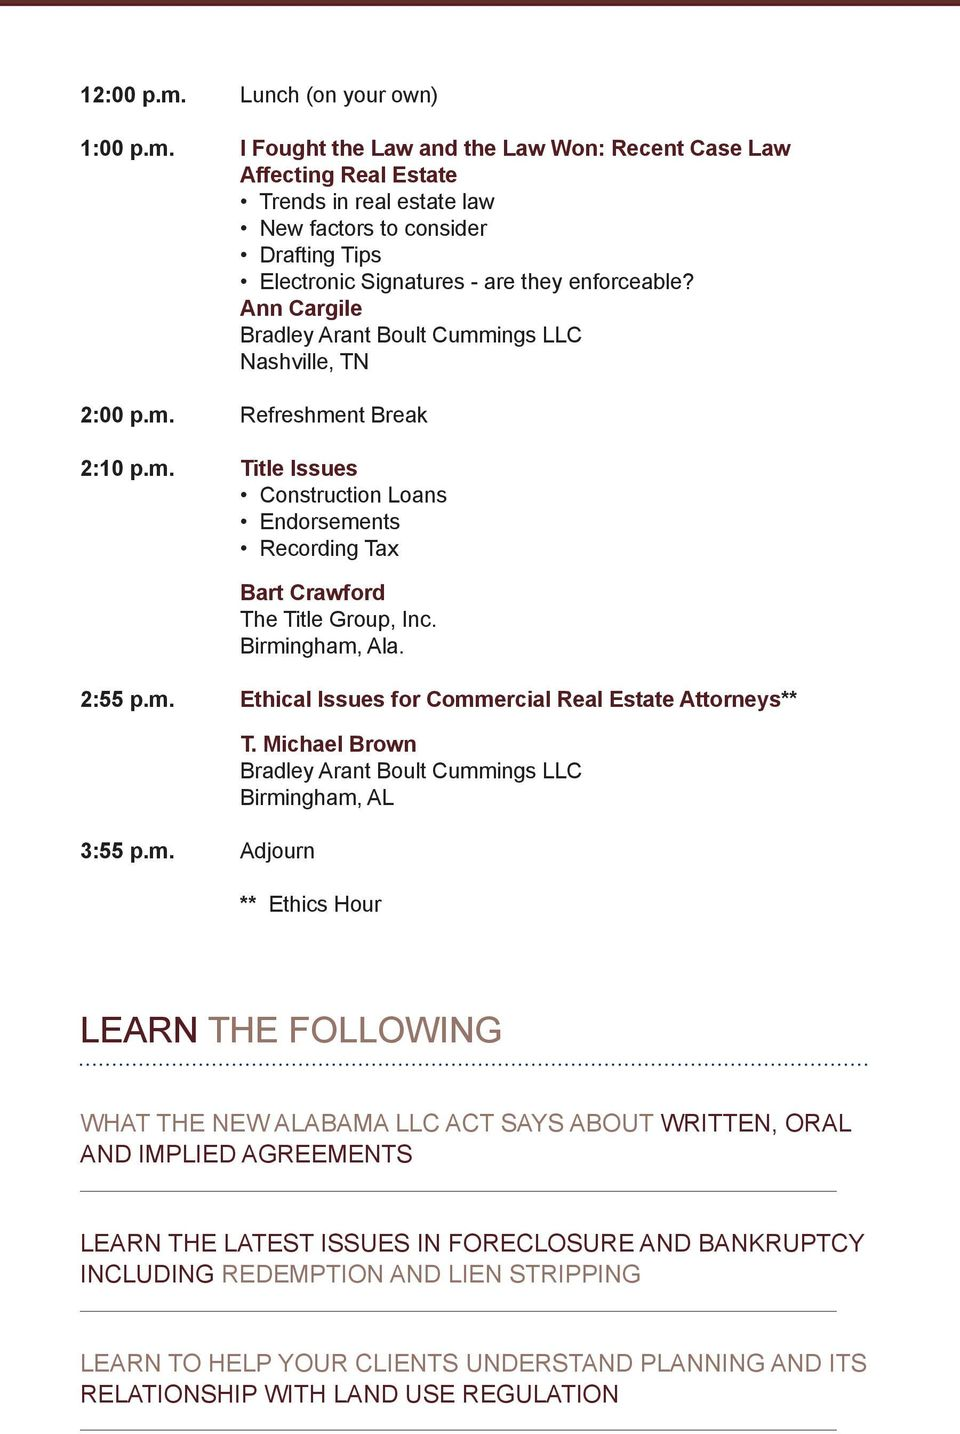 m. Ethical Issues for Commercial Real Estate Attorneys** 3:55 p.m. Adjourn T.